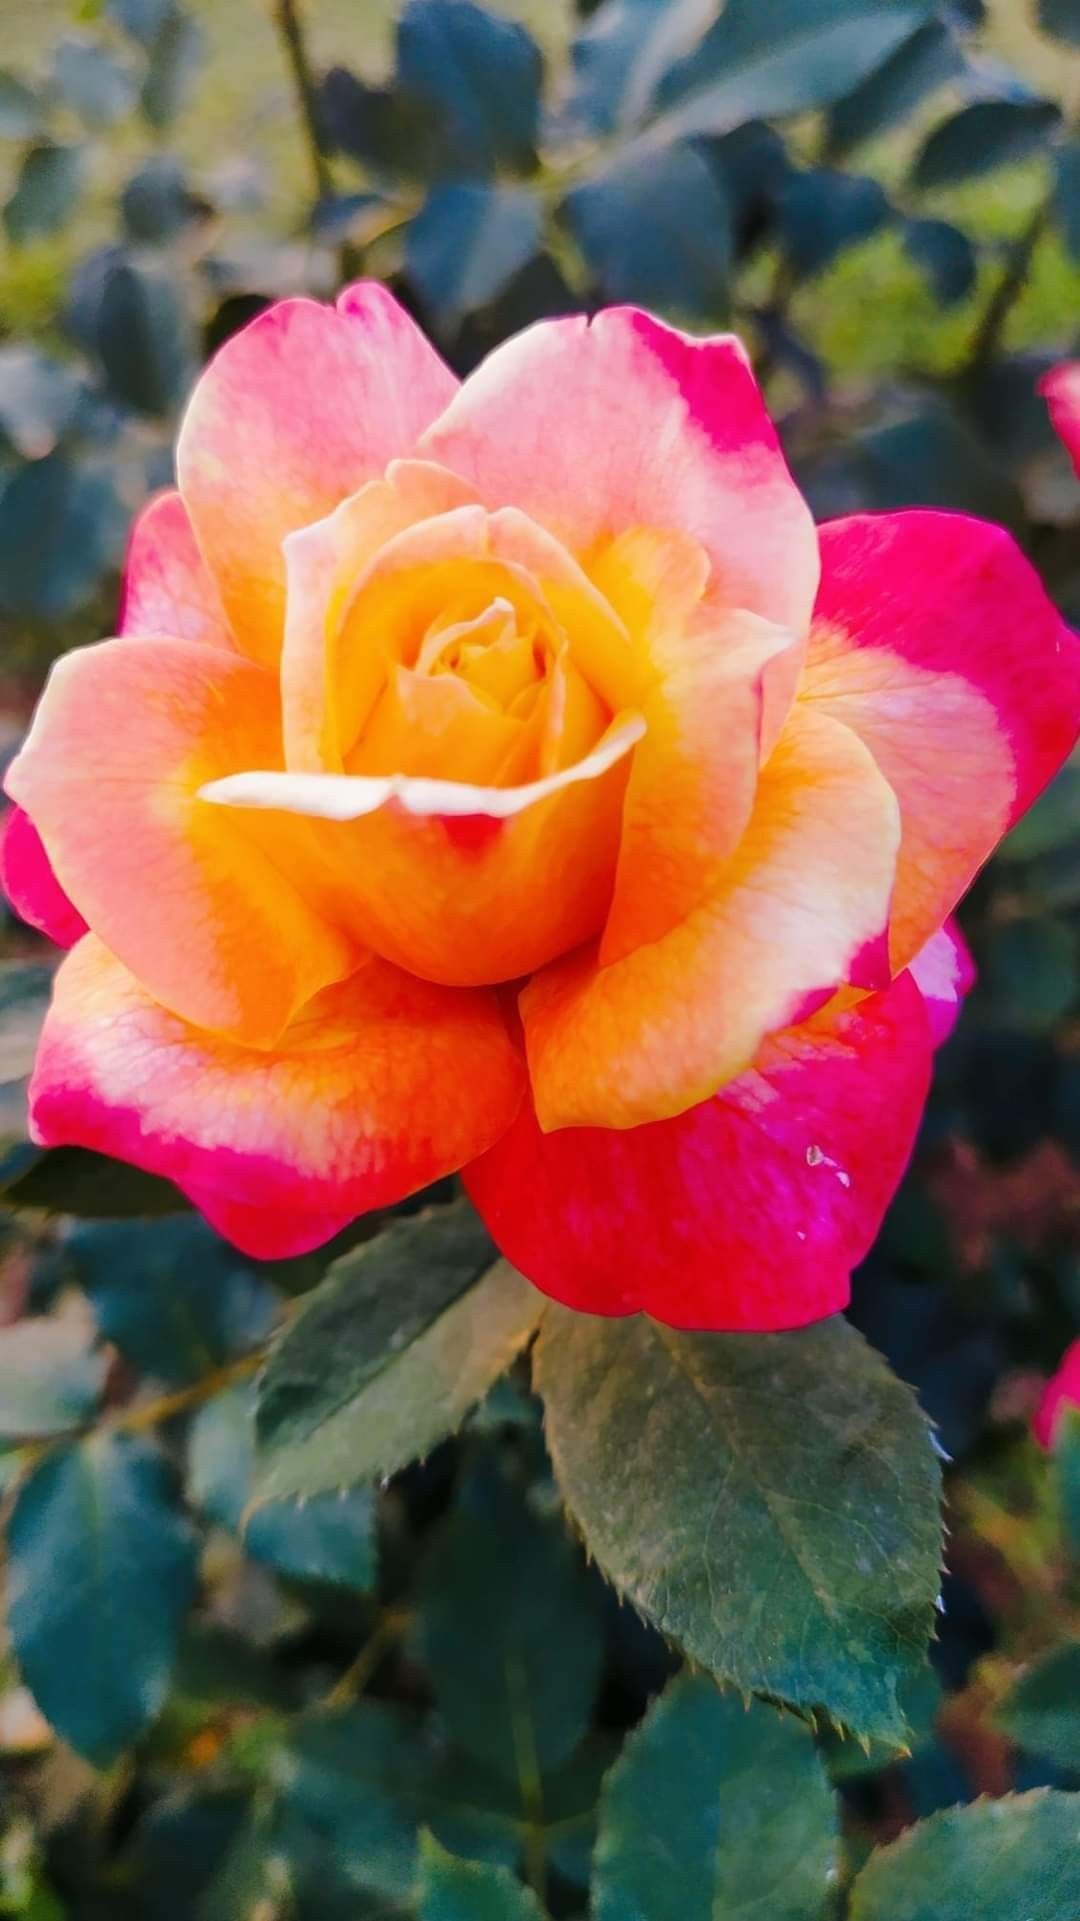 Pin By Sana Khan On 1 A File General Rare Flowers Beautiful Flowers Amazing Flowers